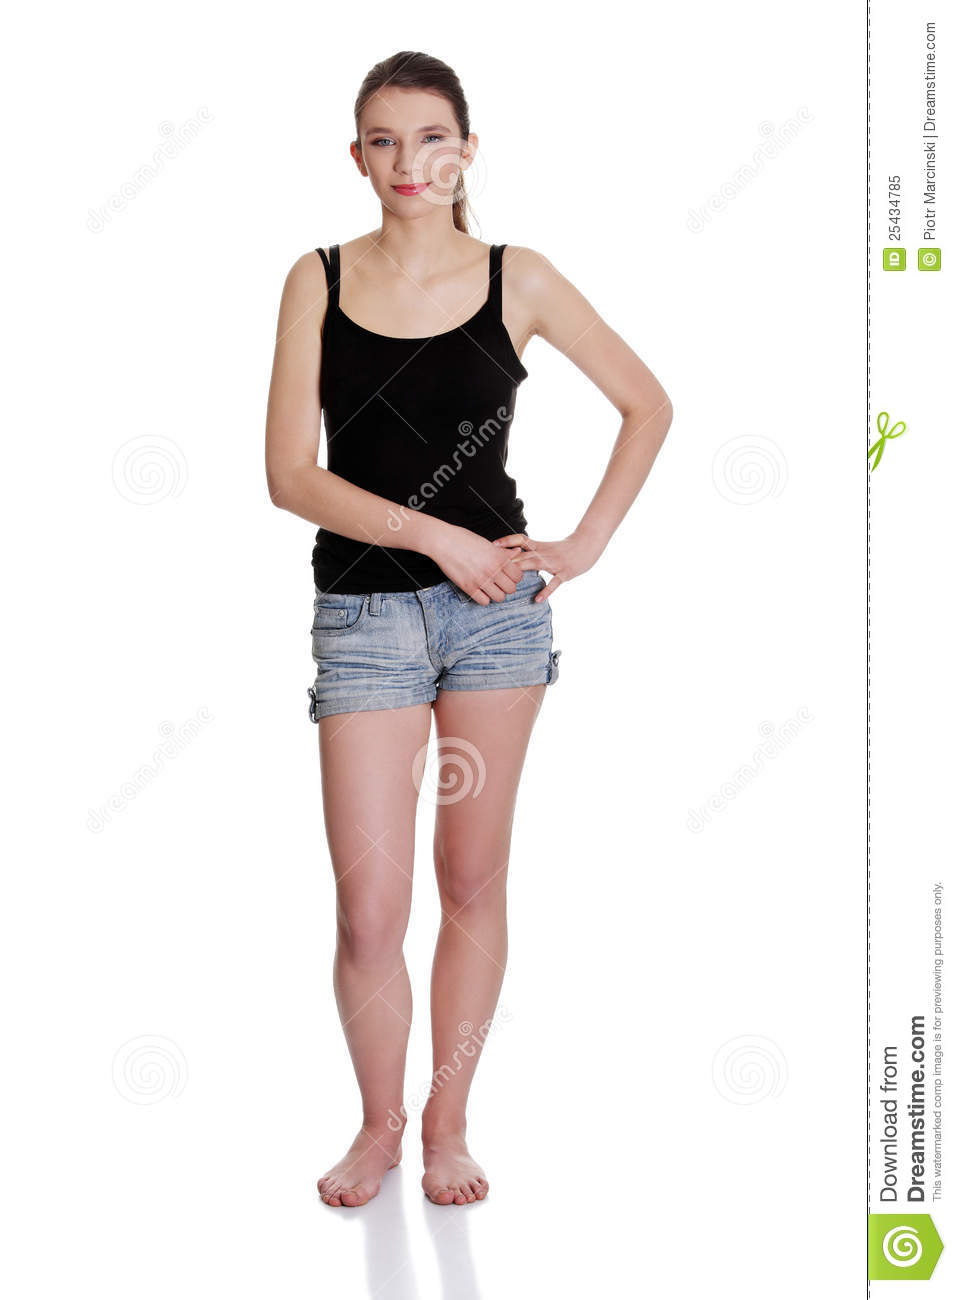 All Figure Of The Young Woman In Informal Dress. Stock Image - Image ... c25c99d0c